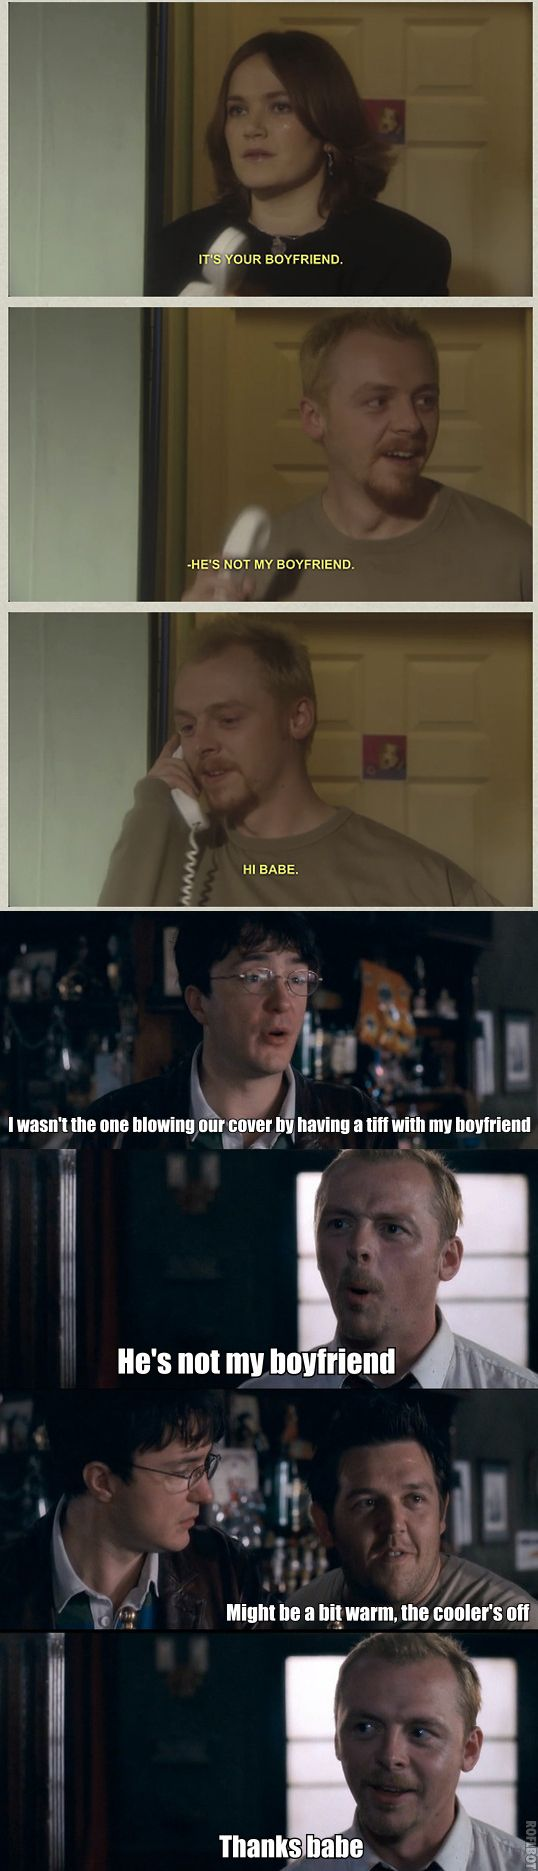 Simon Pegg  Nick Frost in Spaced and Shaun of the Dead - Some things never change.